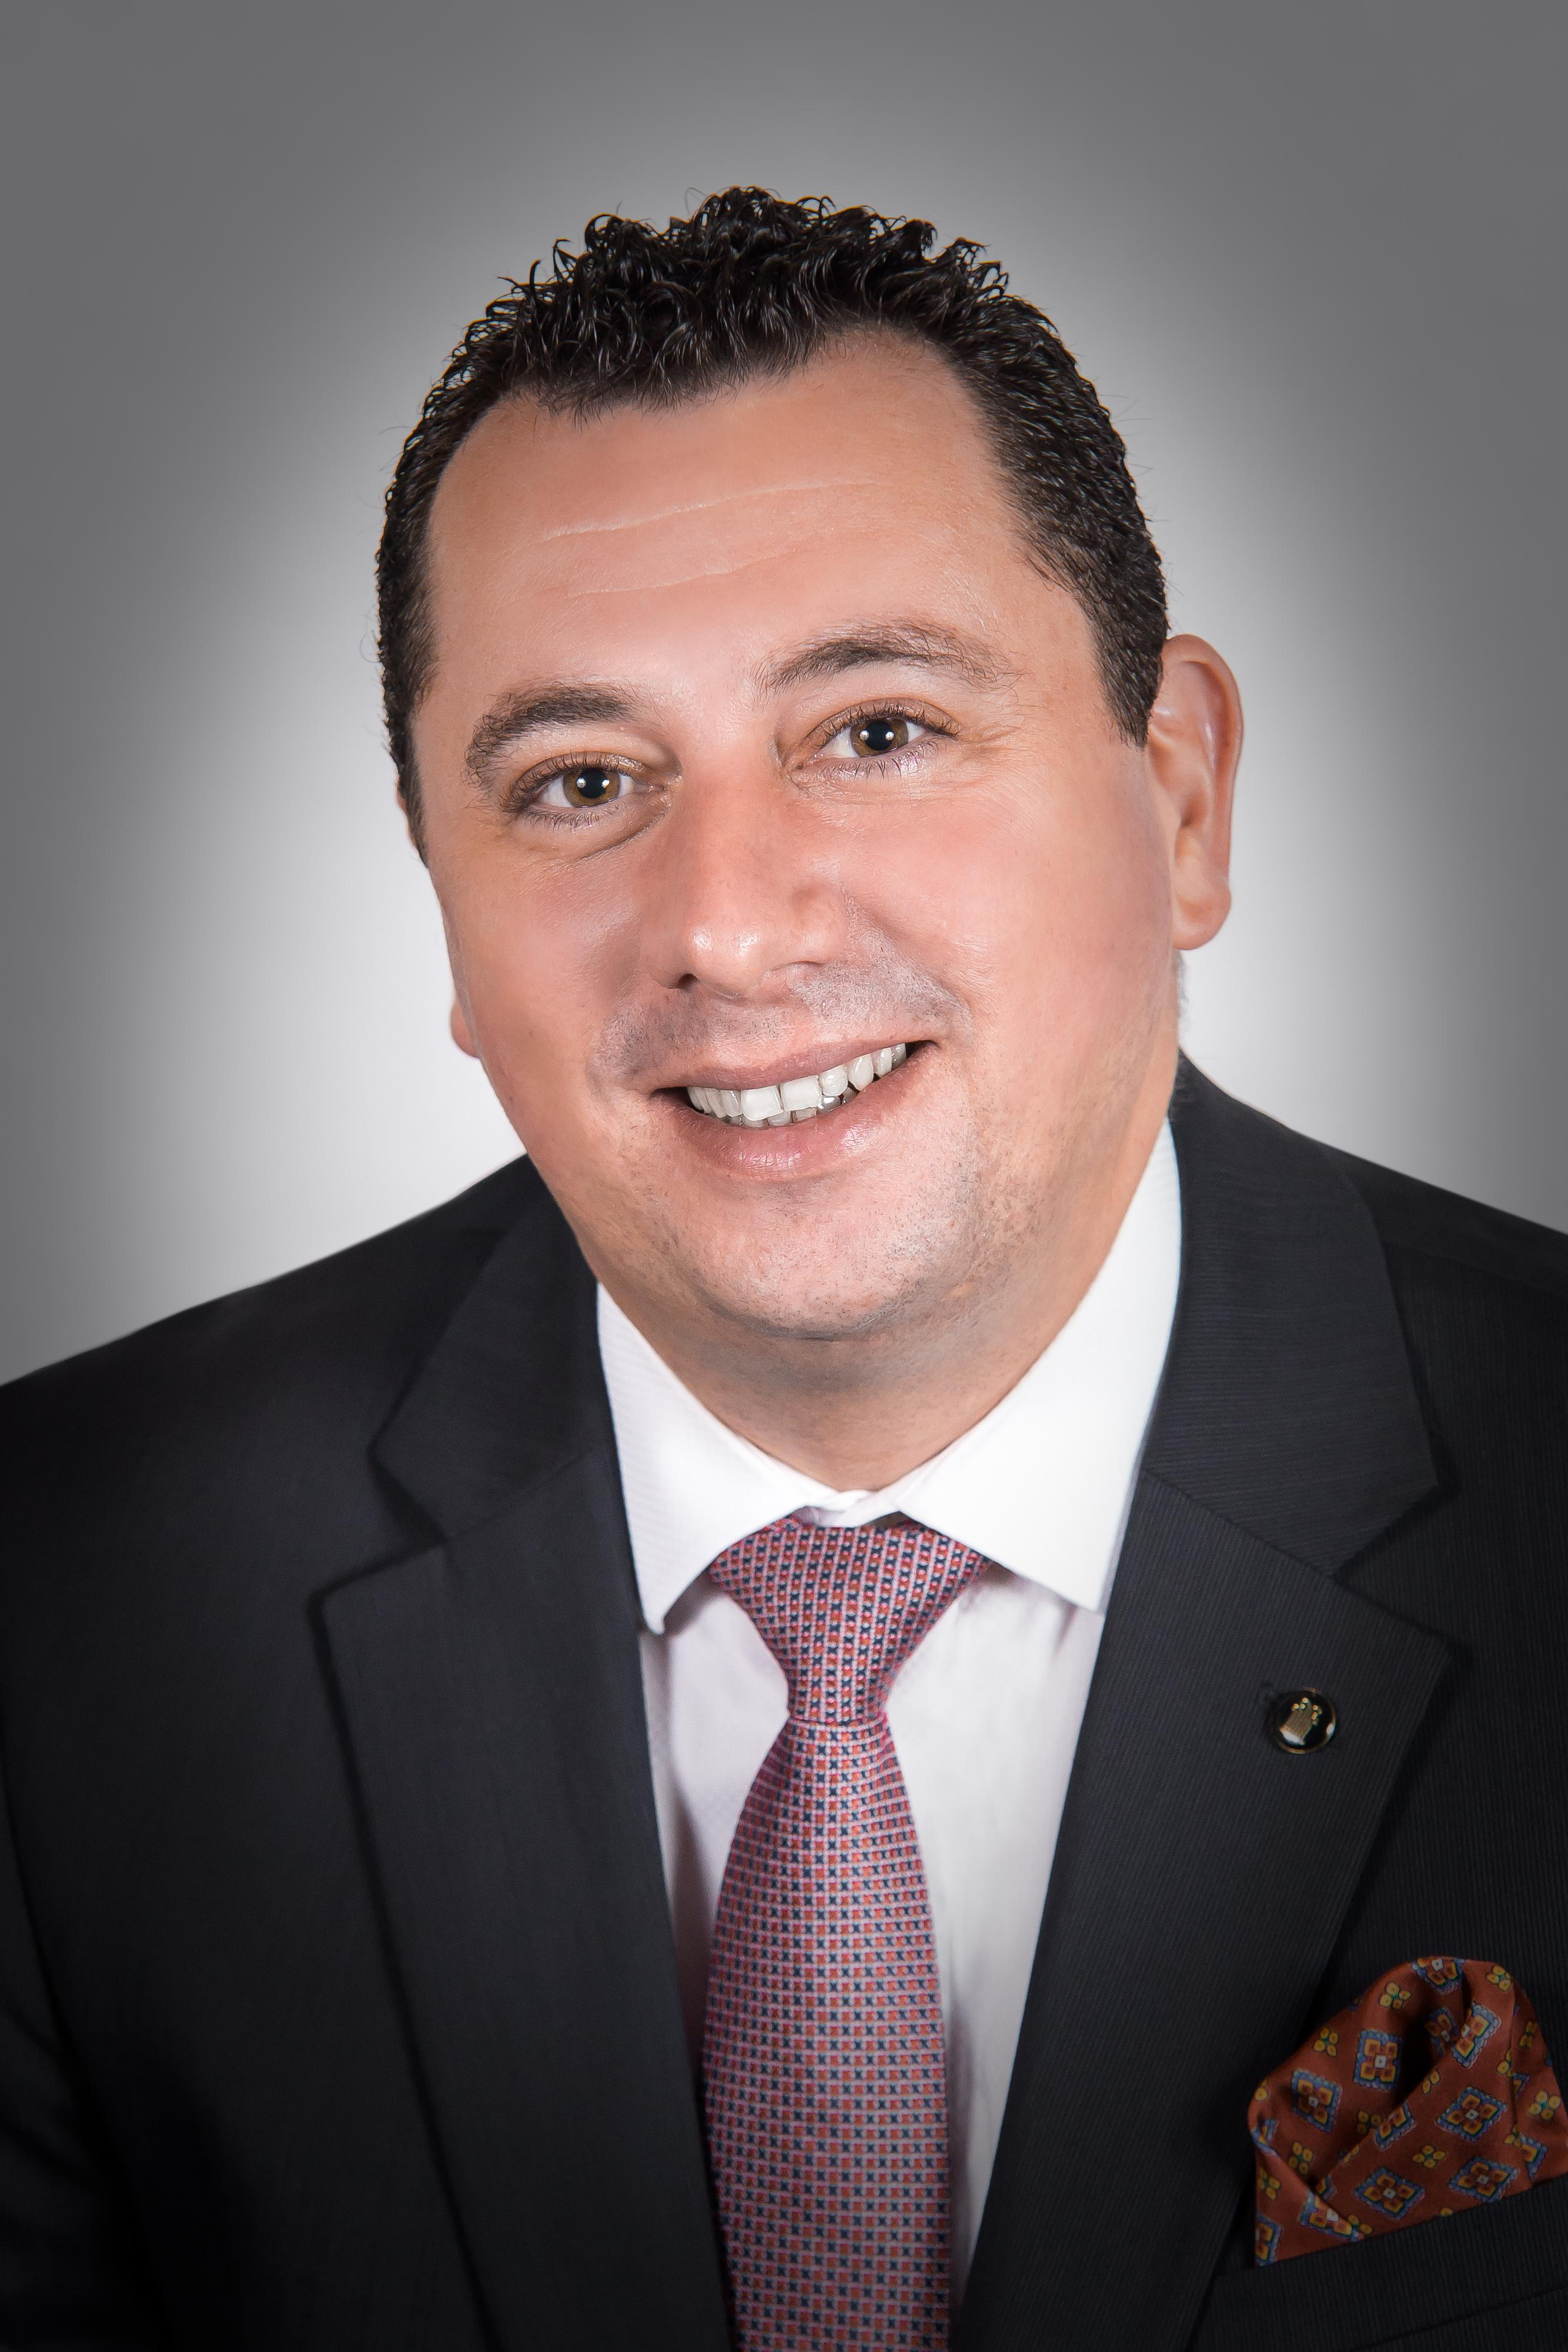 Jean Pierre Mifsud, General Manager, Corinthia Hotel Budapest